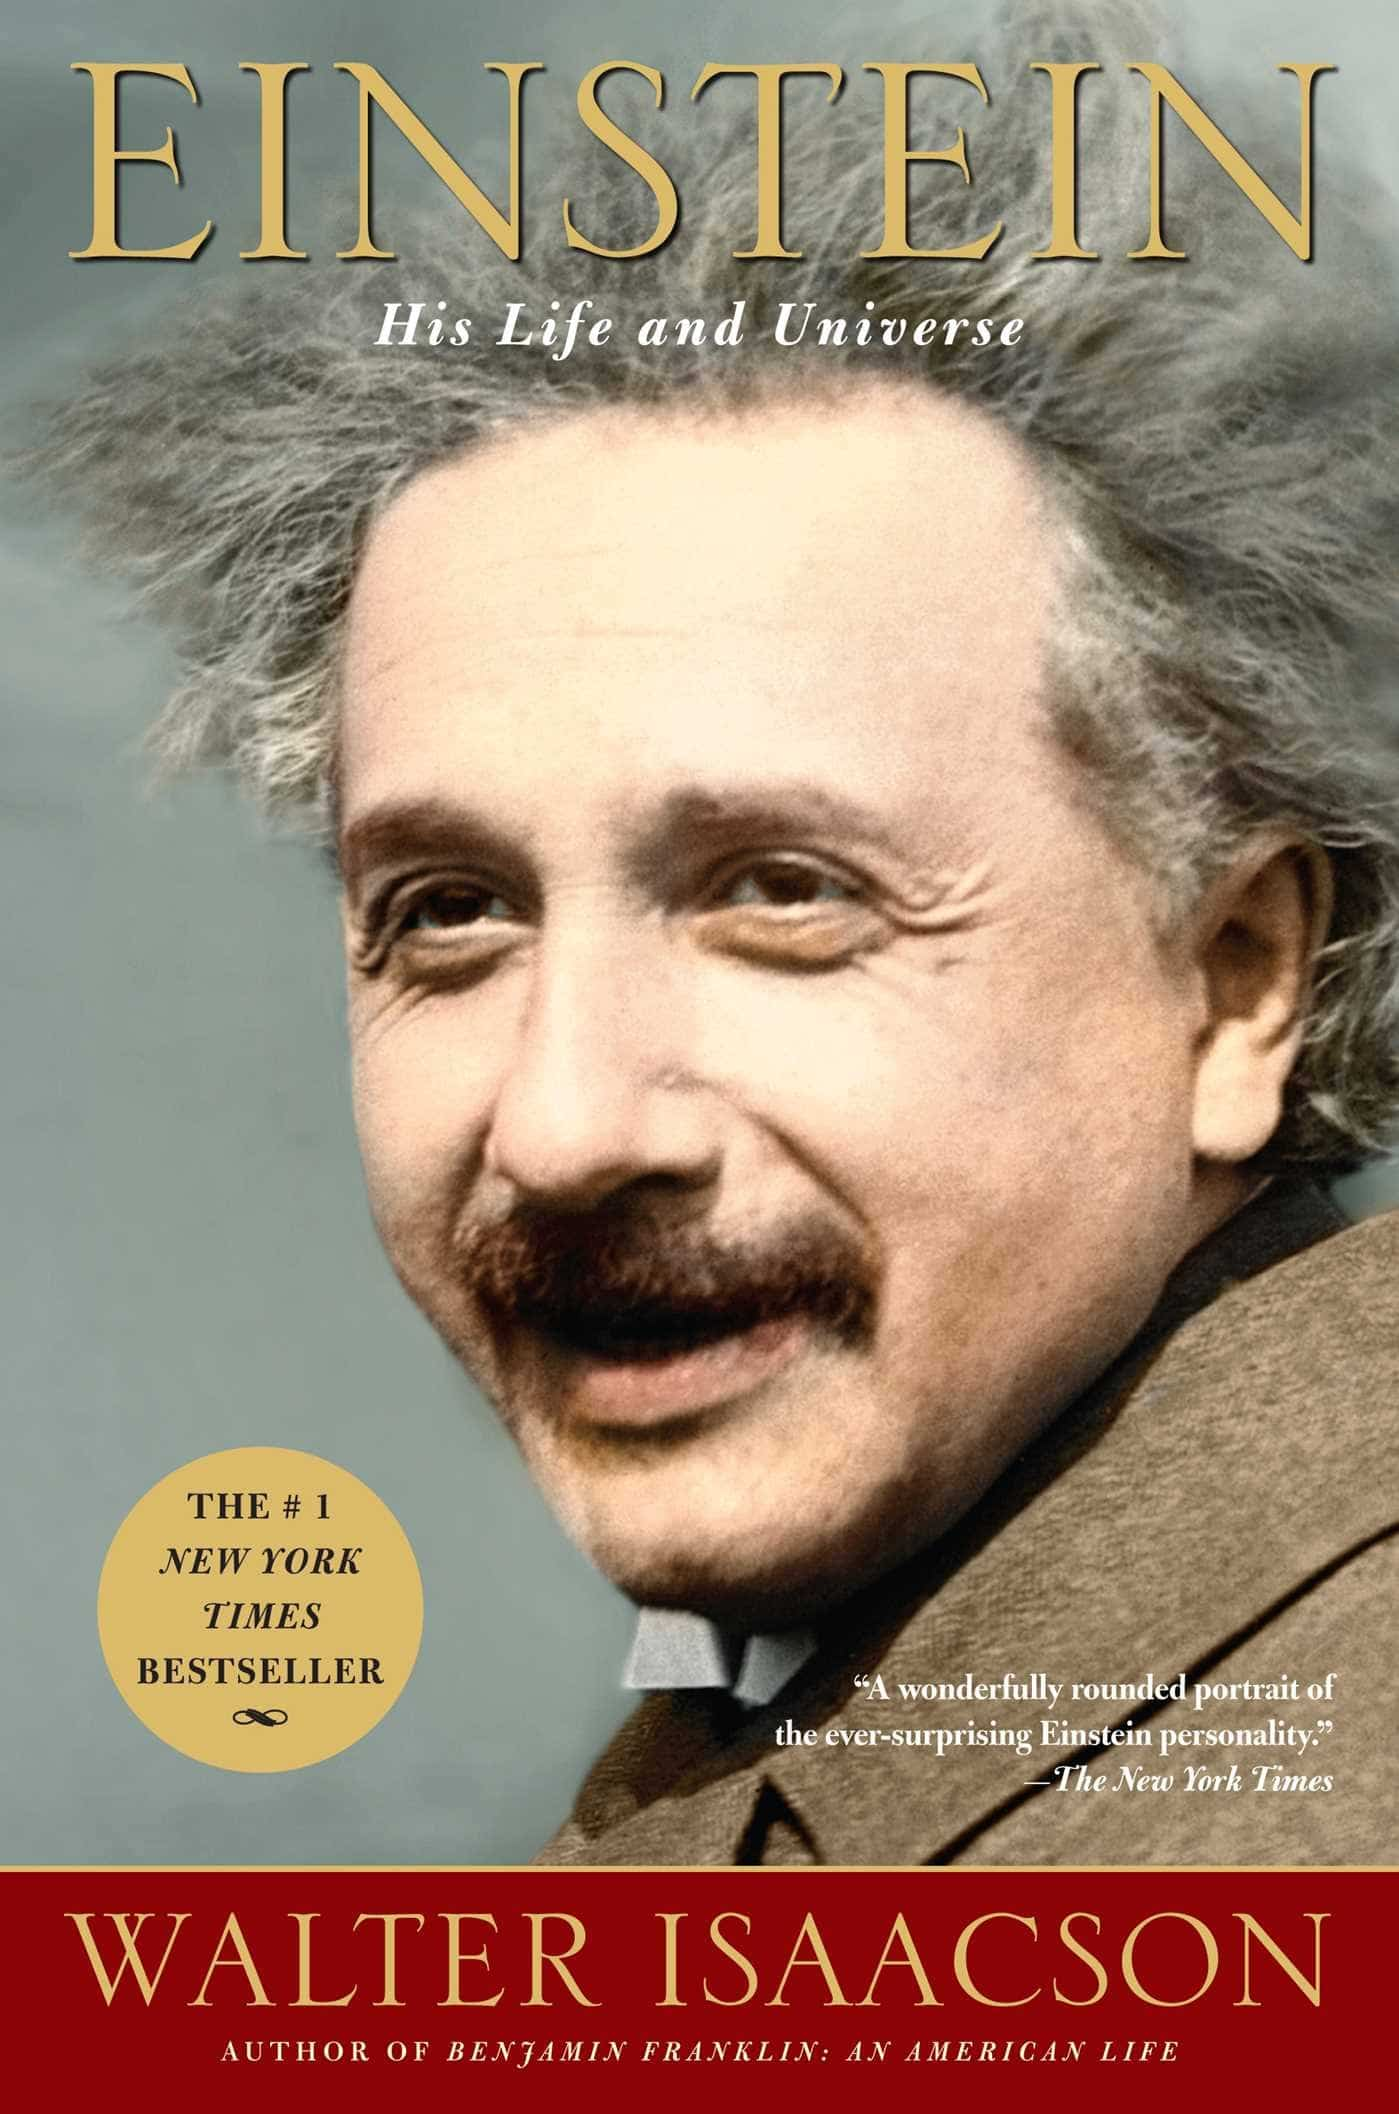 The cover of Einstein